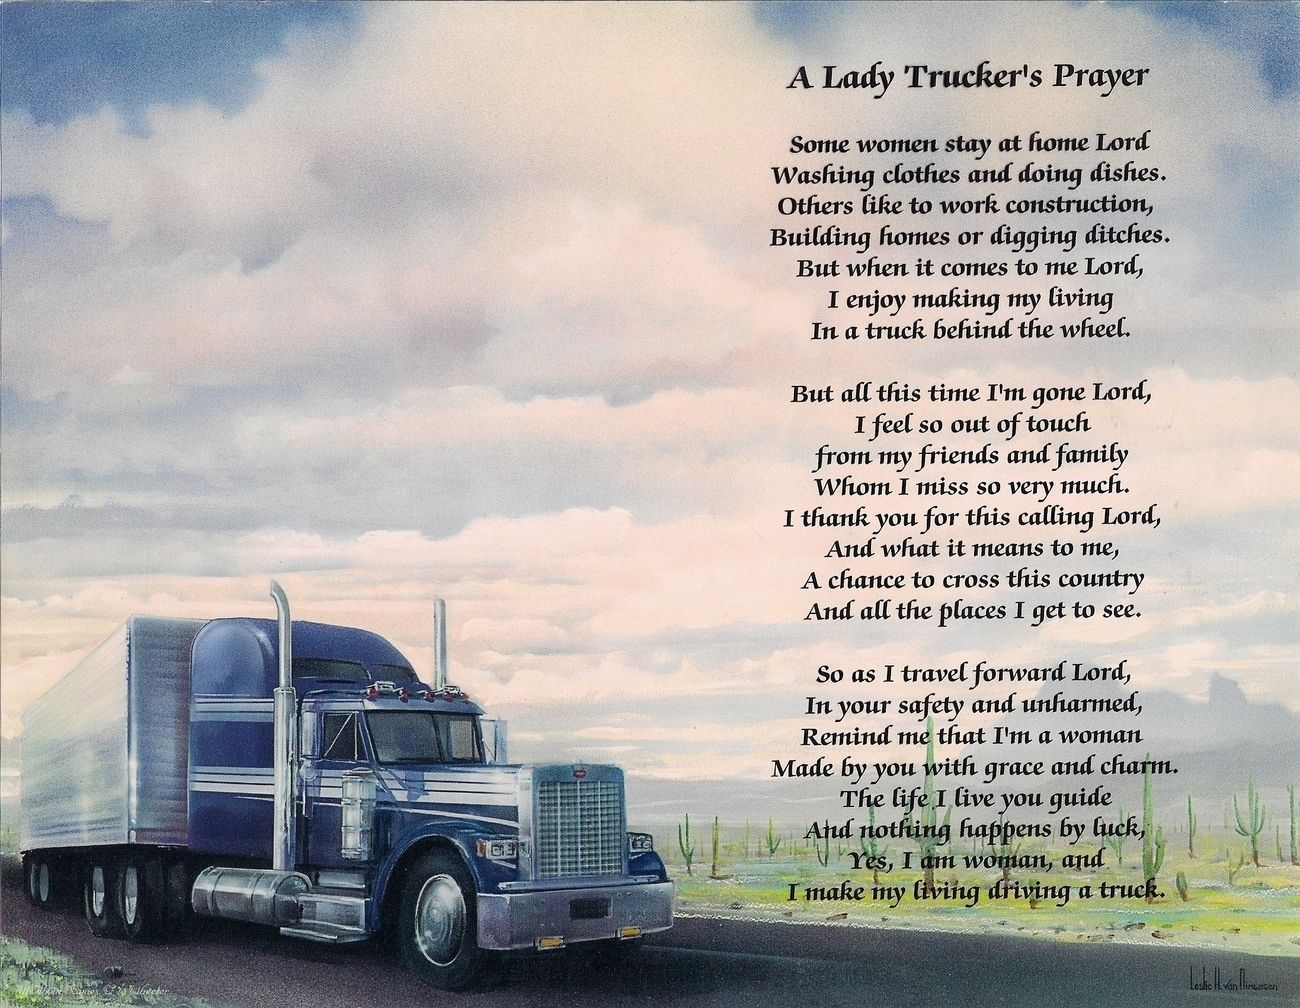 Trucker Quotes 25 Best Women Truckers Images On Pinterest  Truck Drivers Big